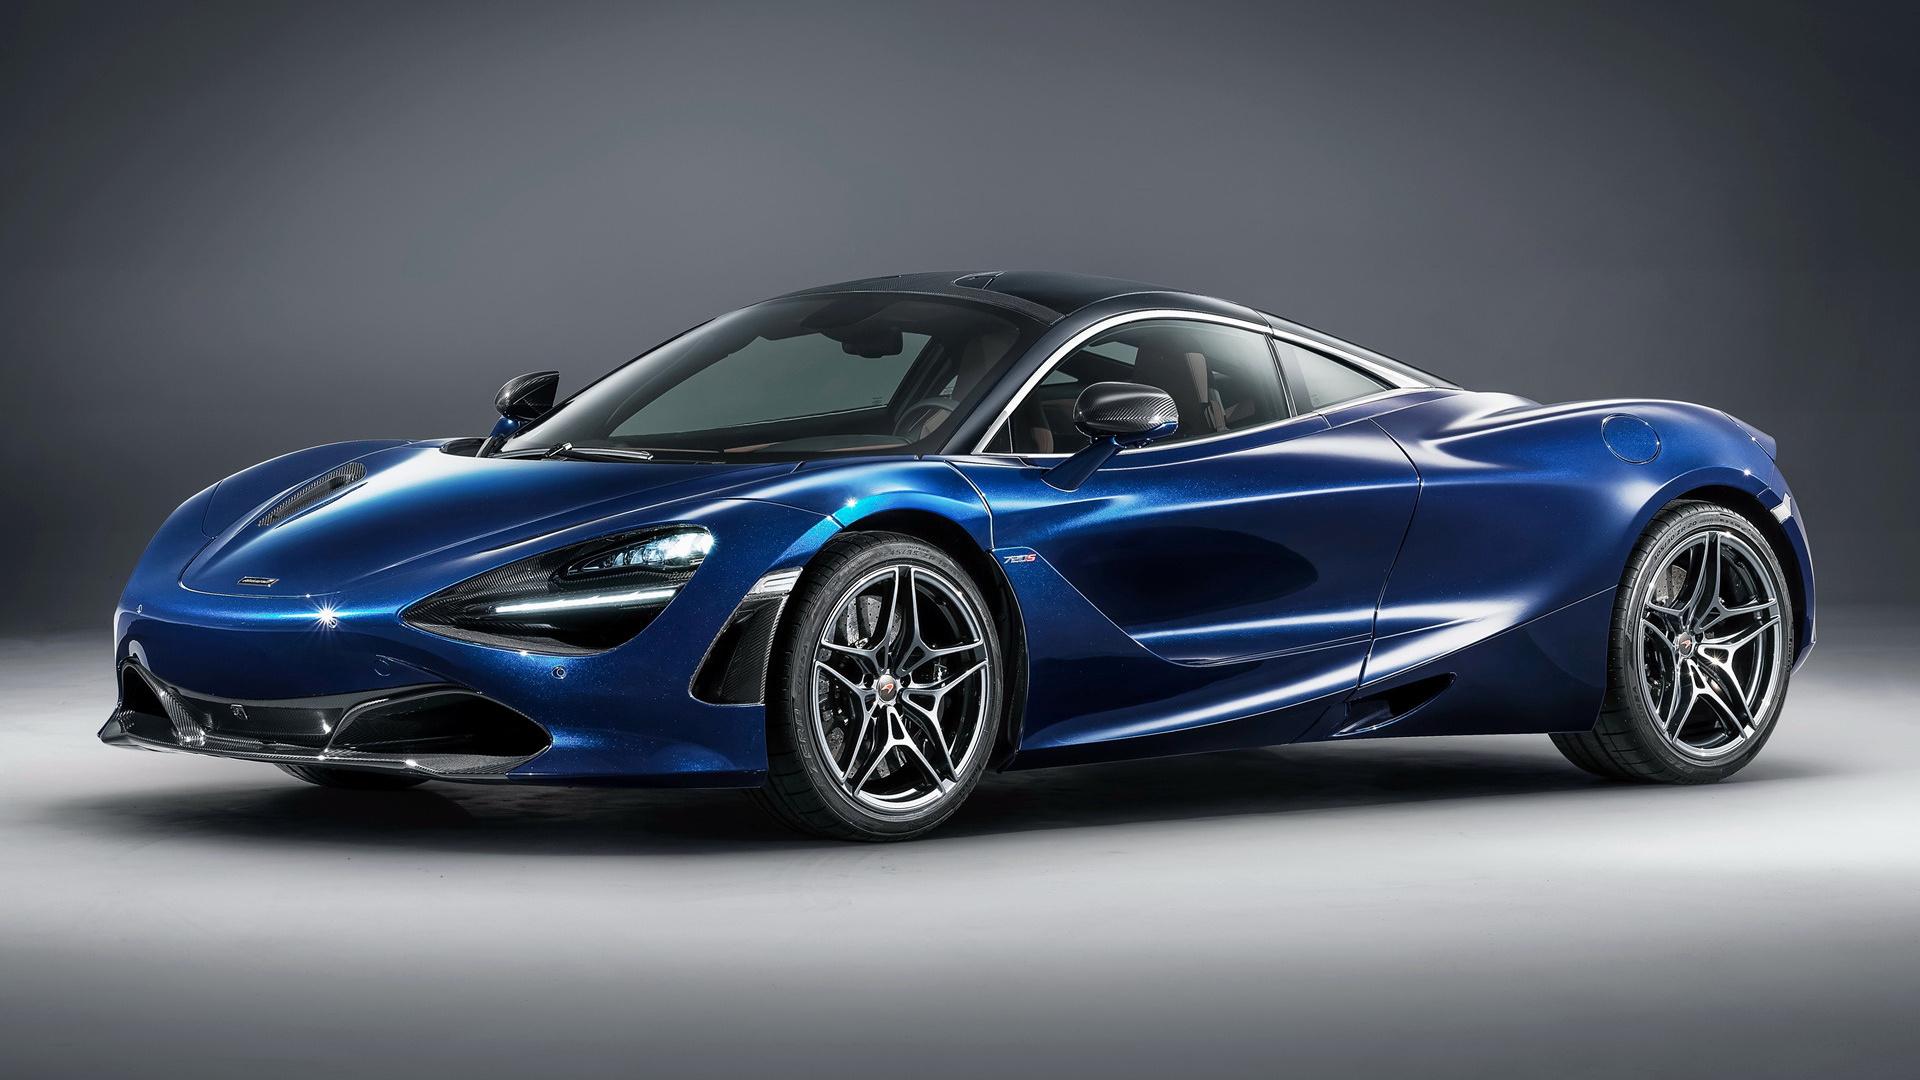 Mclaren 720s Atlantic Blue By Mso 2018 Wallpapers And Hd